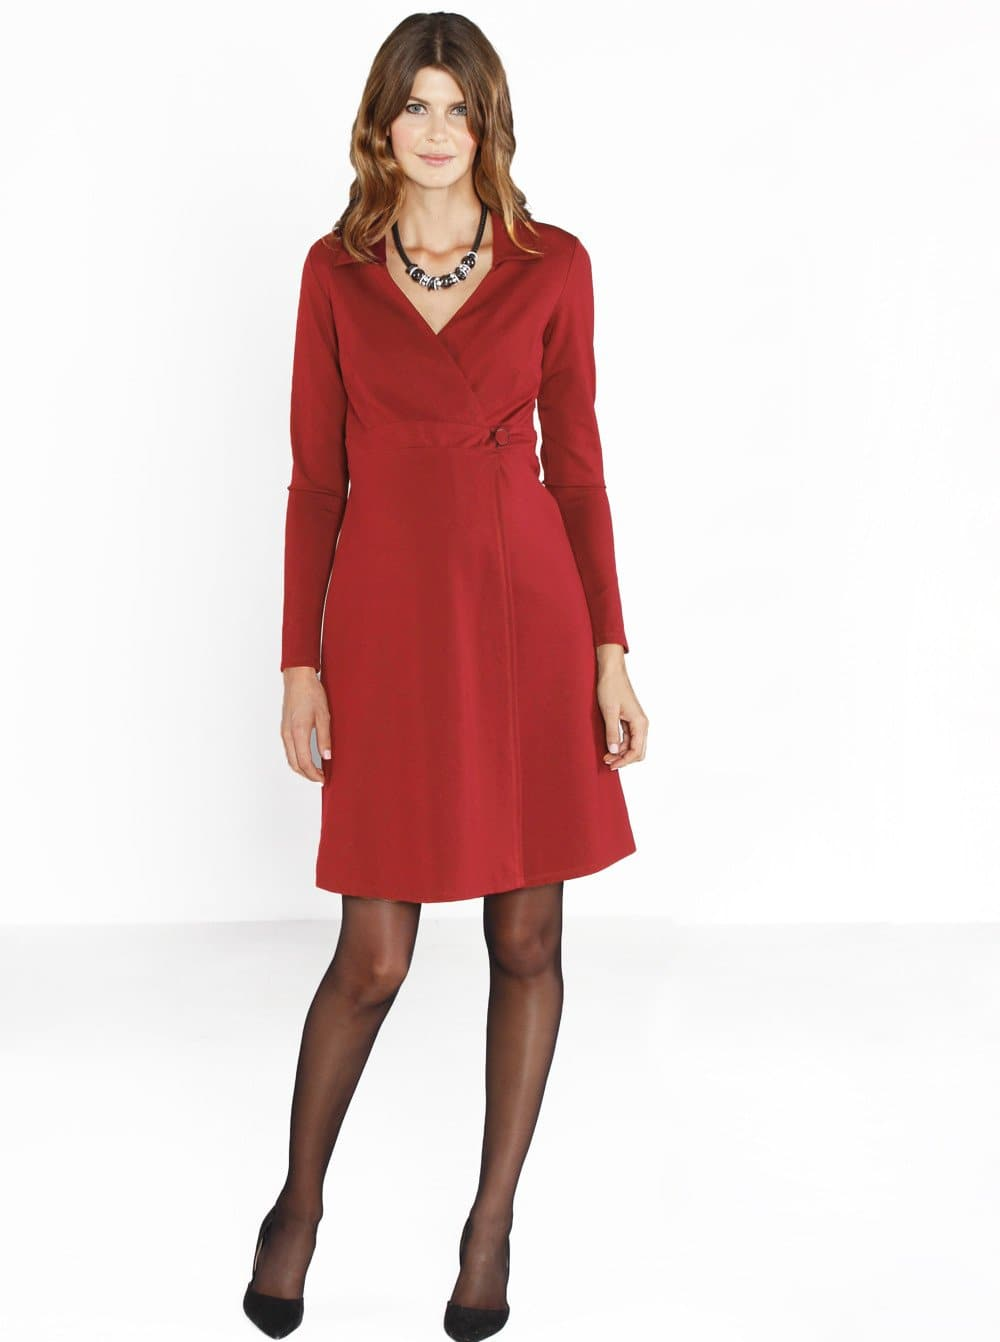 Maternity Mock Wrap Dress in Bright Winter Red - Easy Nursing Opening